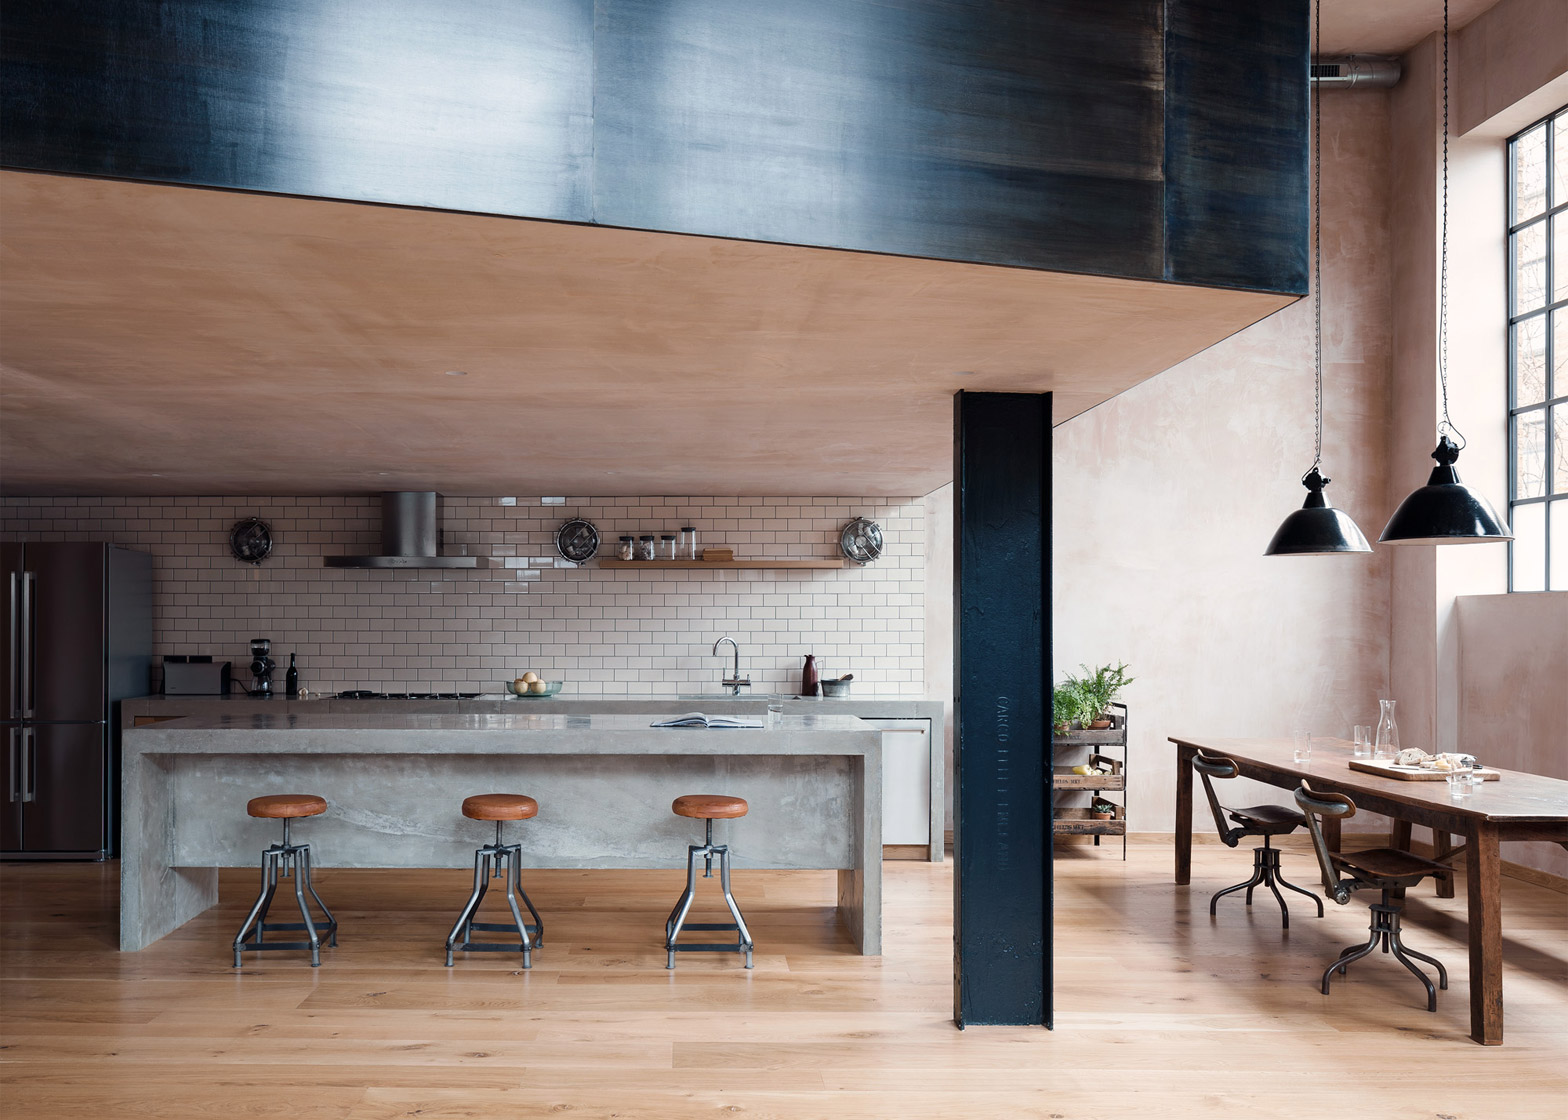 An East London Warehouse was transformed into an impressive Home 4